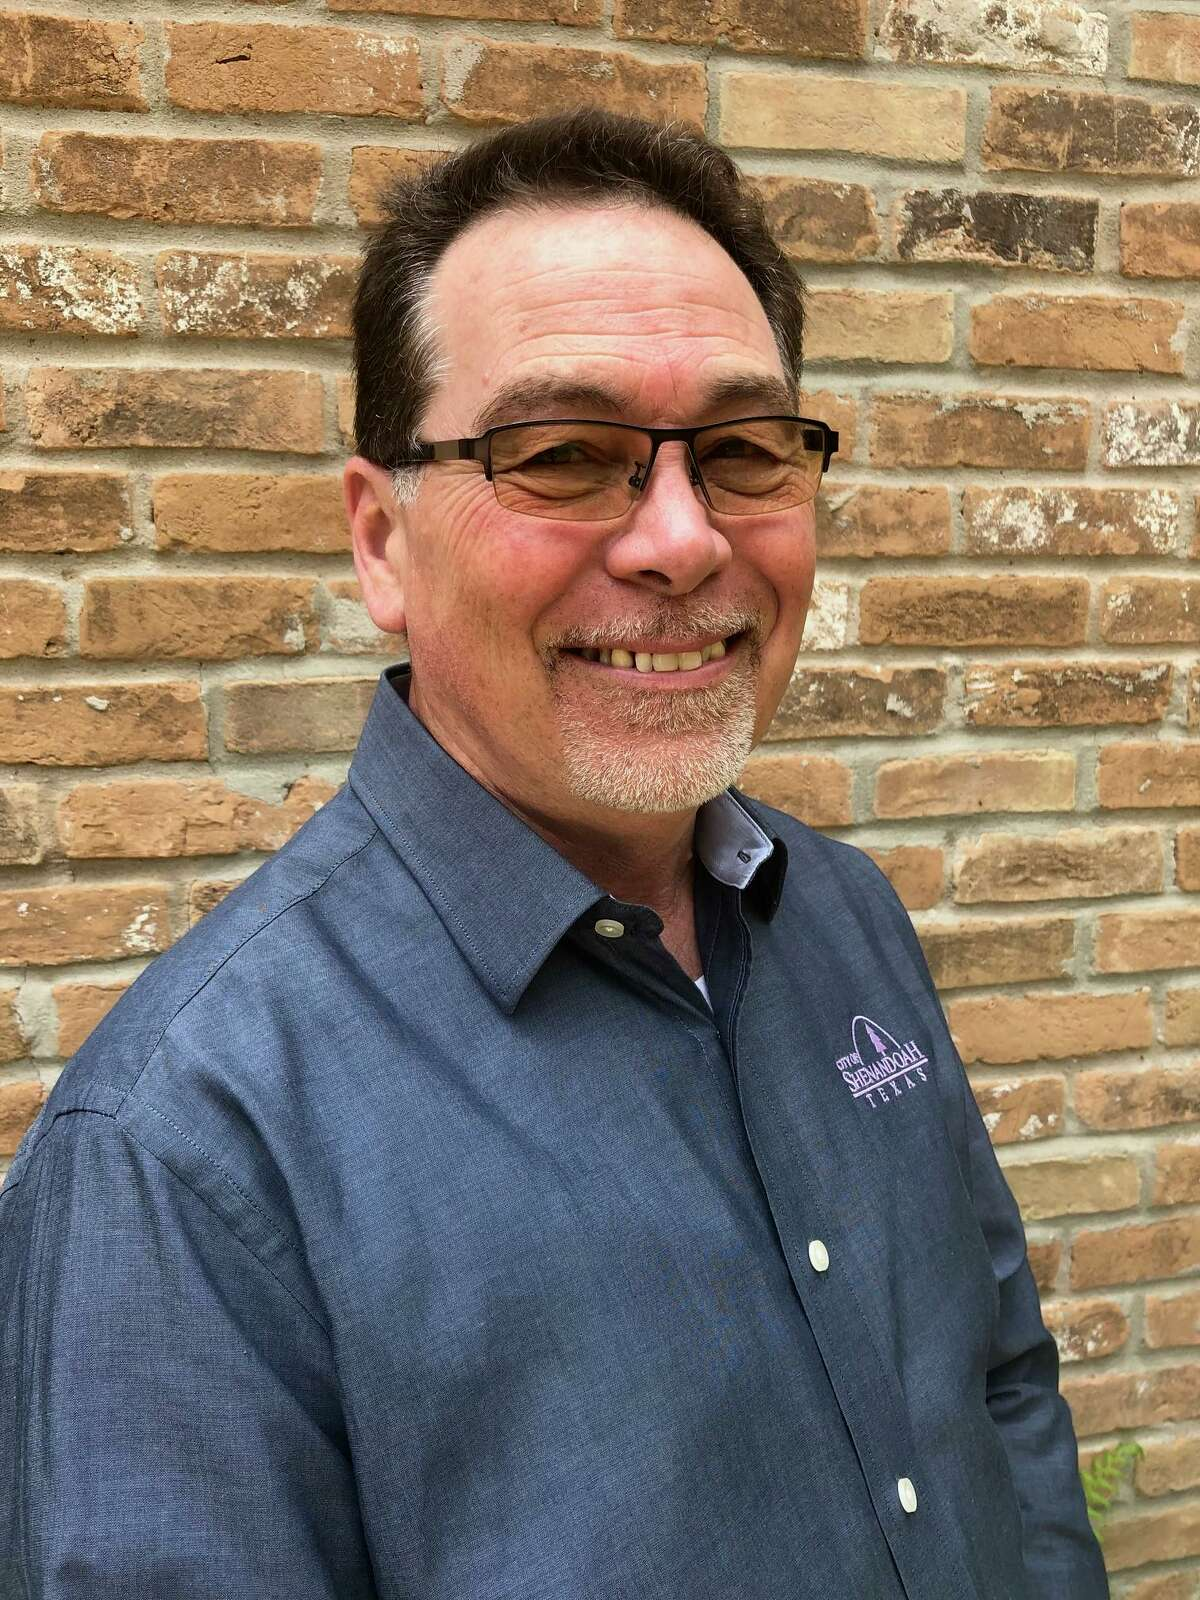 Dean Gristy ran unopposed in 2019 for the Position 3 seat on the Shenandoah City Council, replacing former council member Byron Bevers who declined to seek another term in office. On Jan. 13, 2021, the Shenandoah City Council voted unanimously to approve holding the municipal elections in May for three open city council seats; Seats 2, 3 and 4 are up for election this year. The seats are held by Ted Fletcher, Dean Gristy and Charlie Bradt.